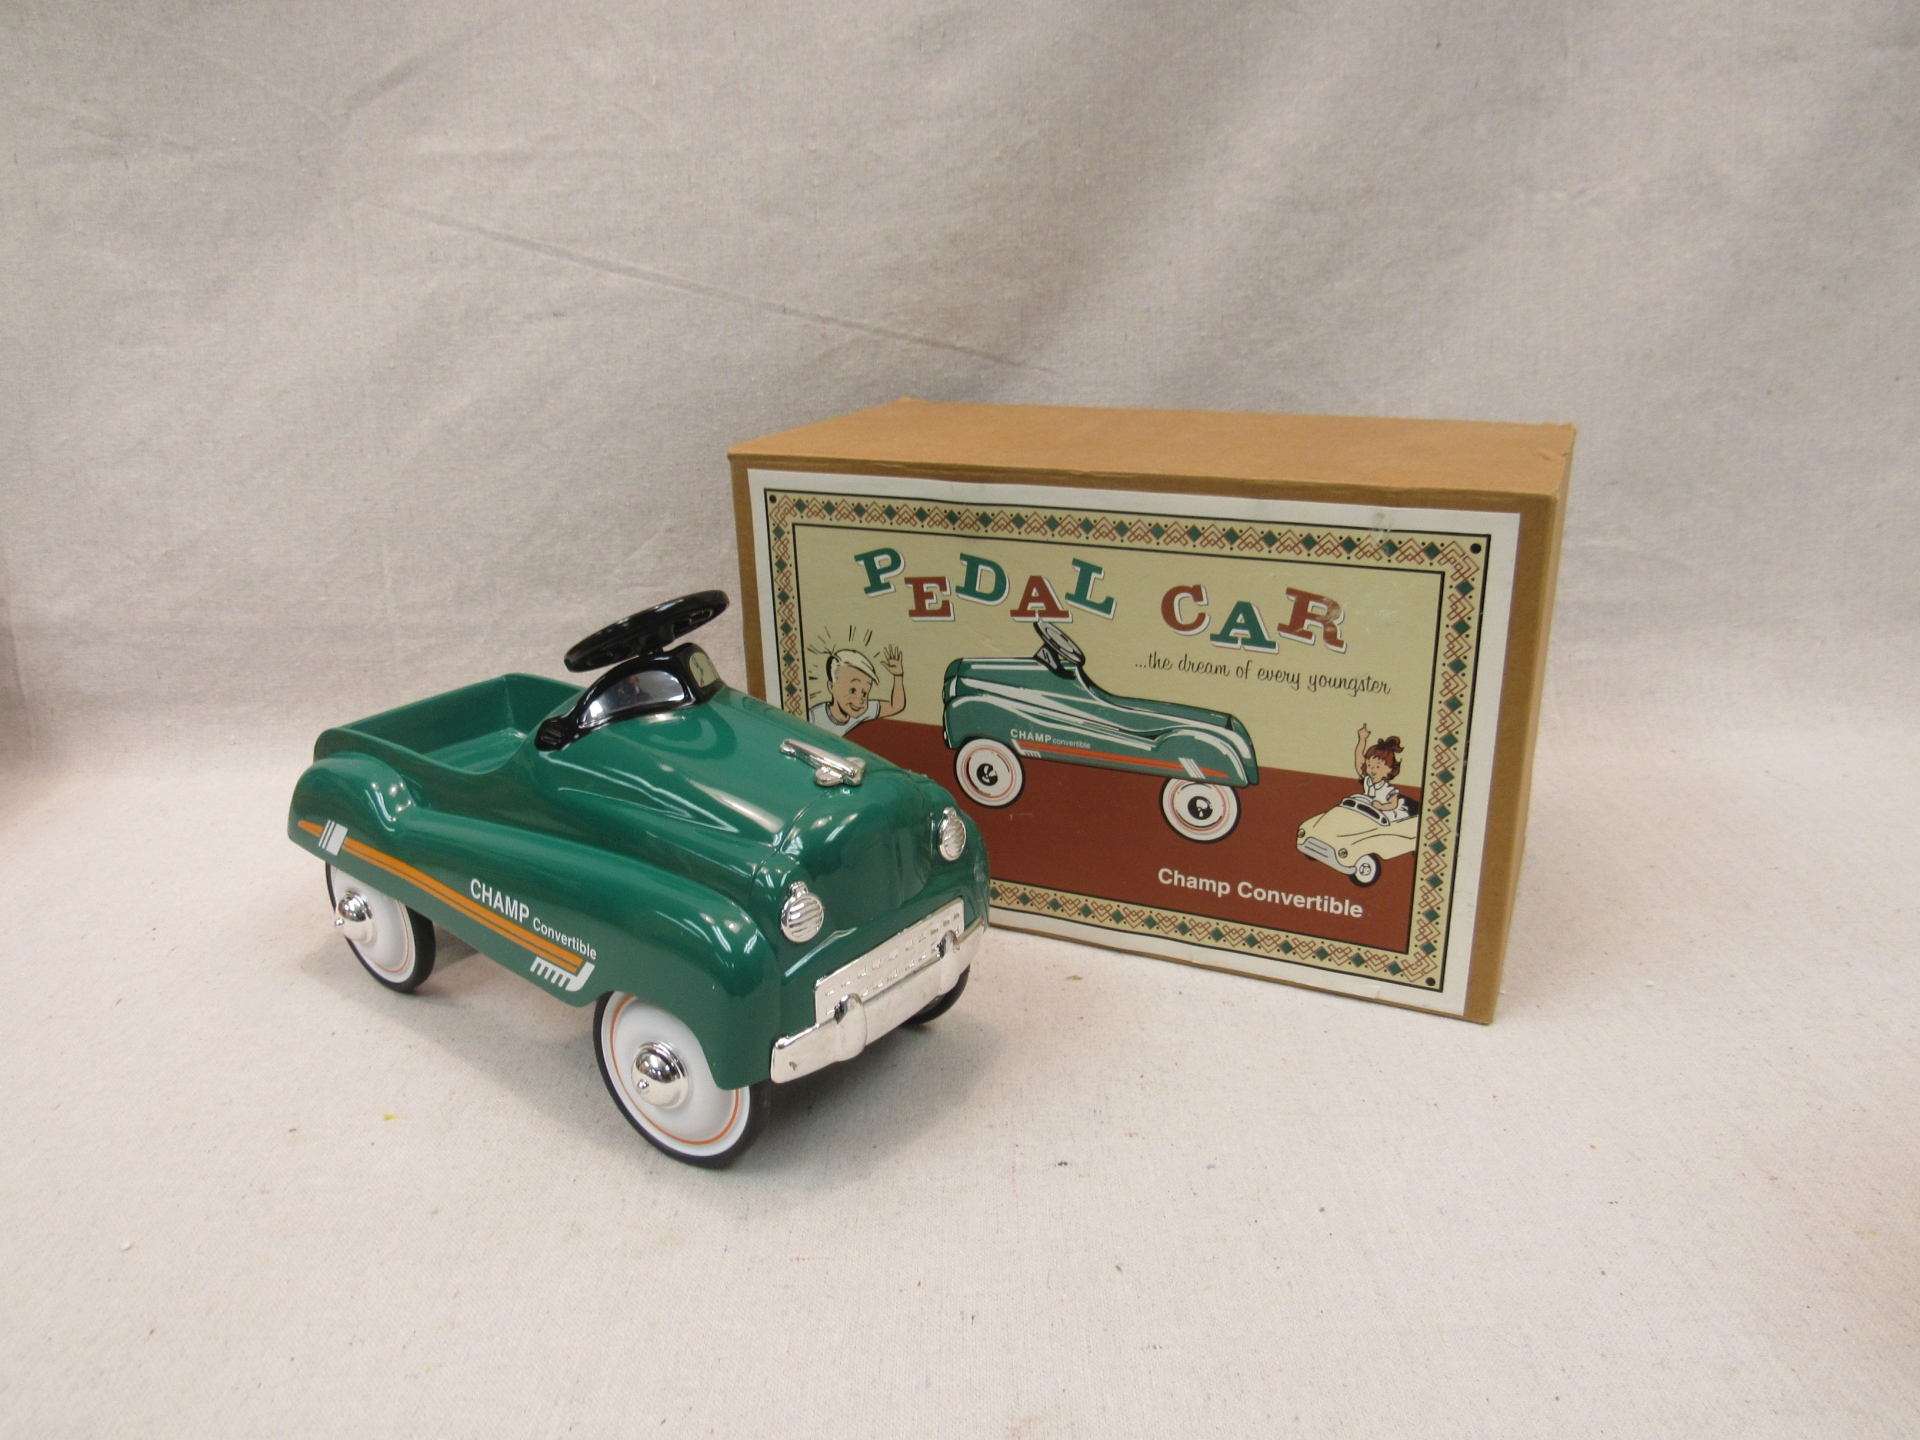 *NEW* Champ Convertible Die Cast Metal Pedal Car